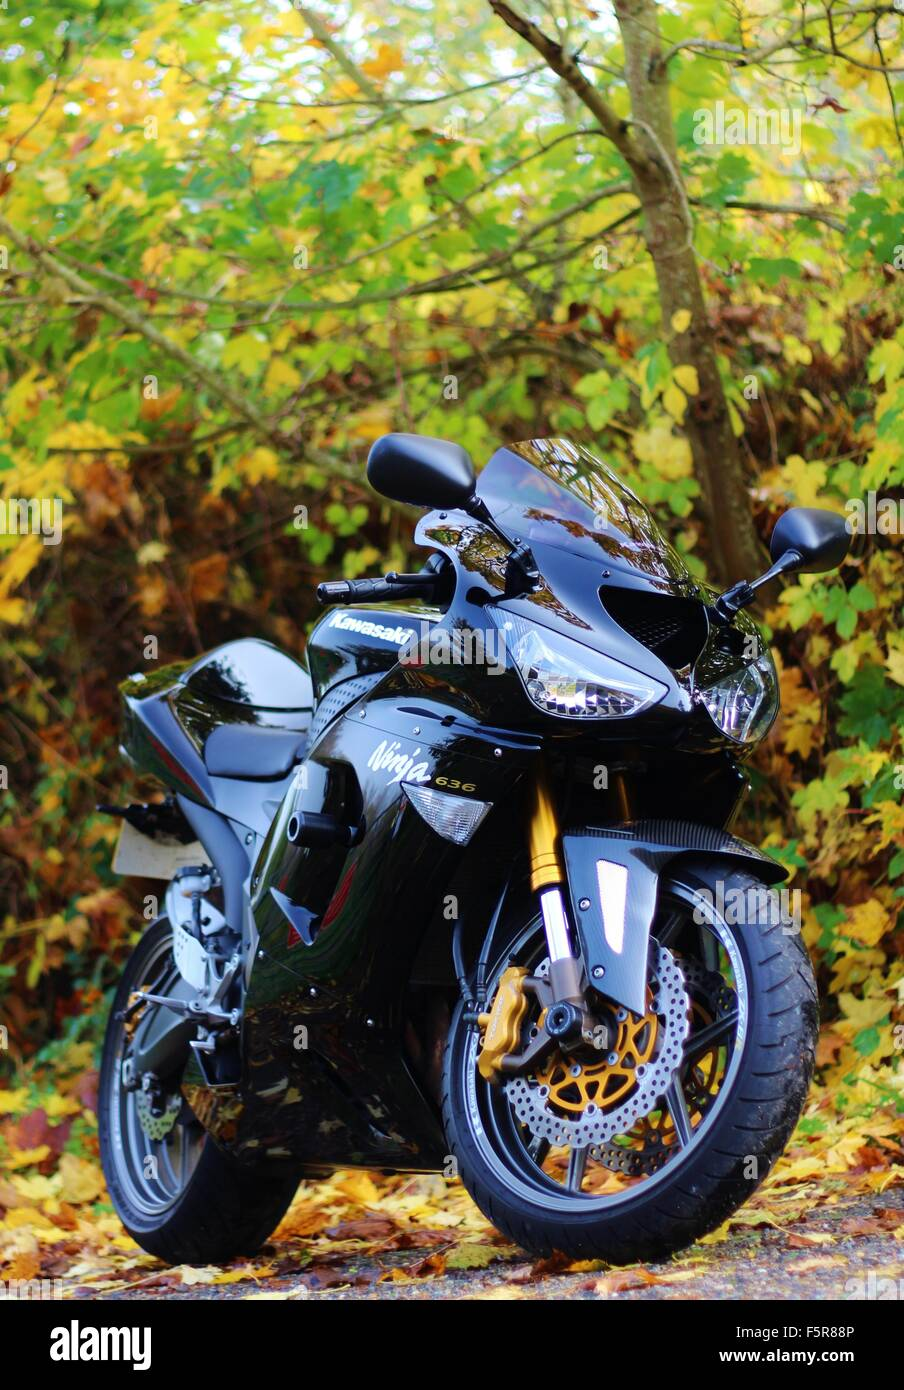 Black Kawasaki Ninja Zx 6r Autumn Leaves Stock Photo 89636534 Alamy